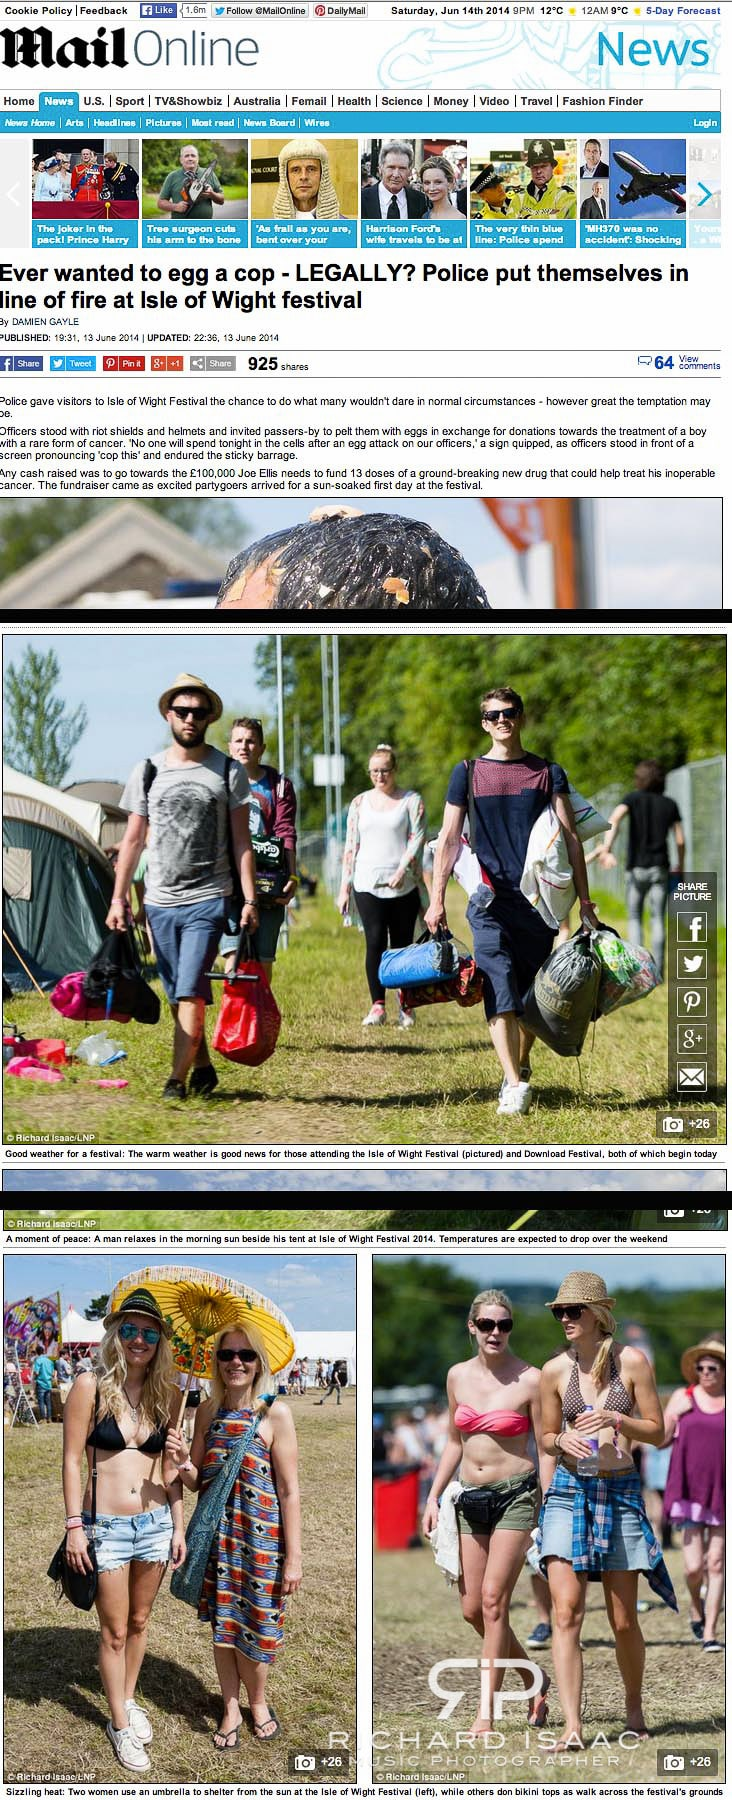 Isle of Wight Festival 2014 – image usage Mailonline 13-14/6/14